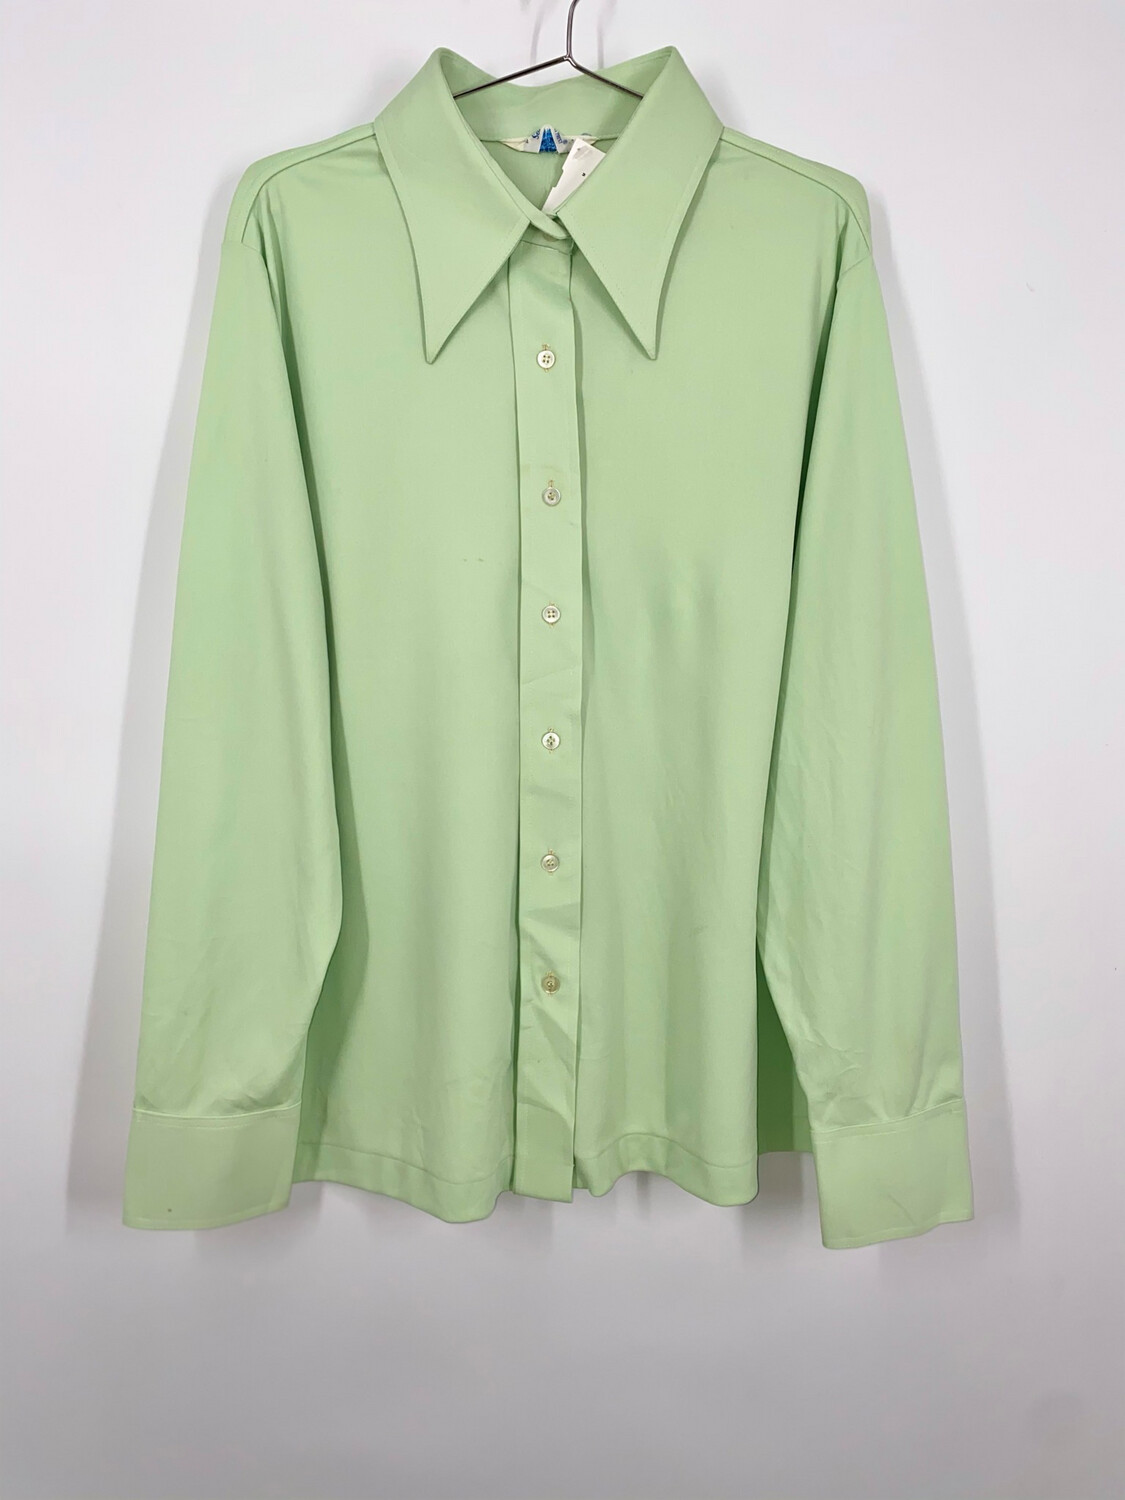 Sears Button Up Size M